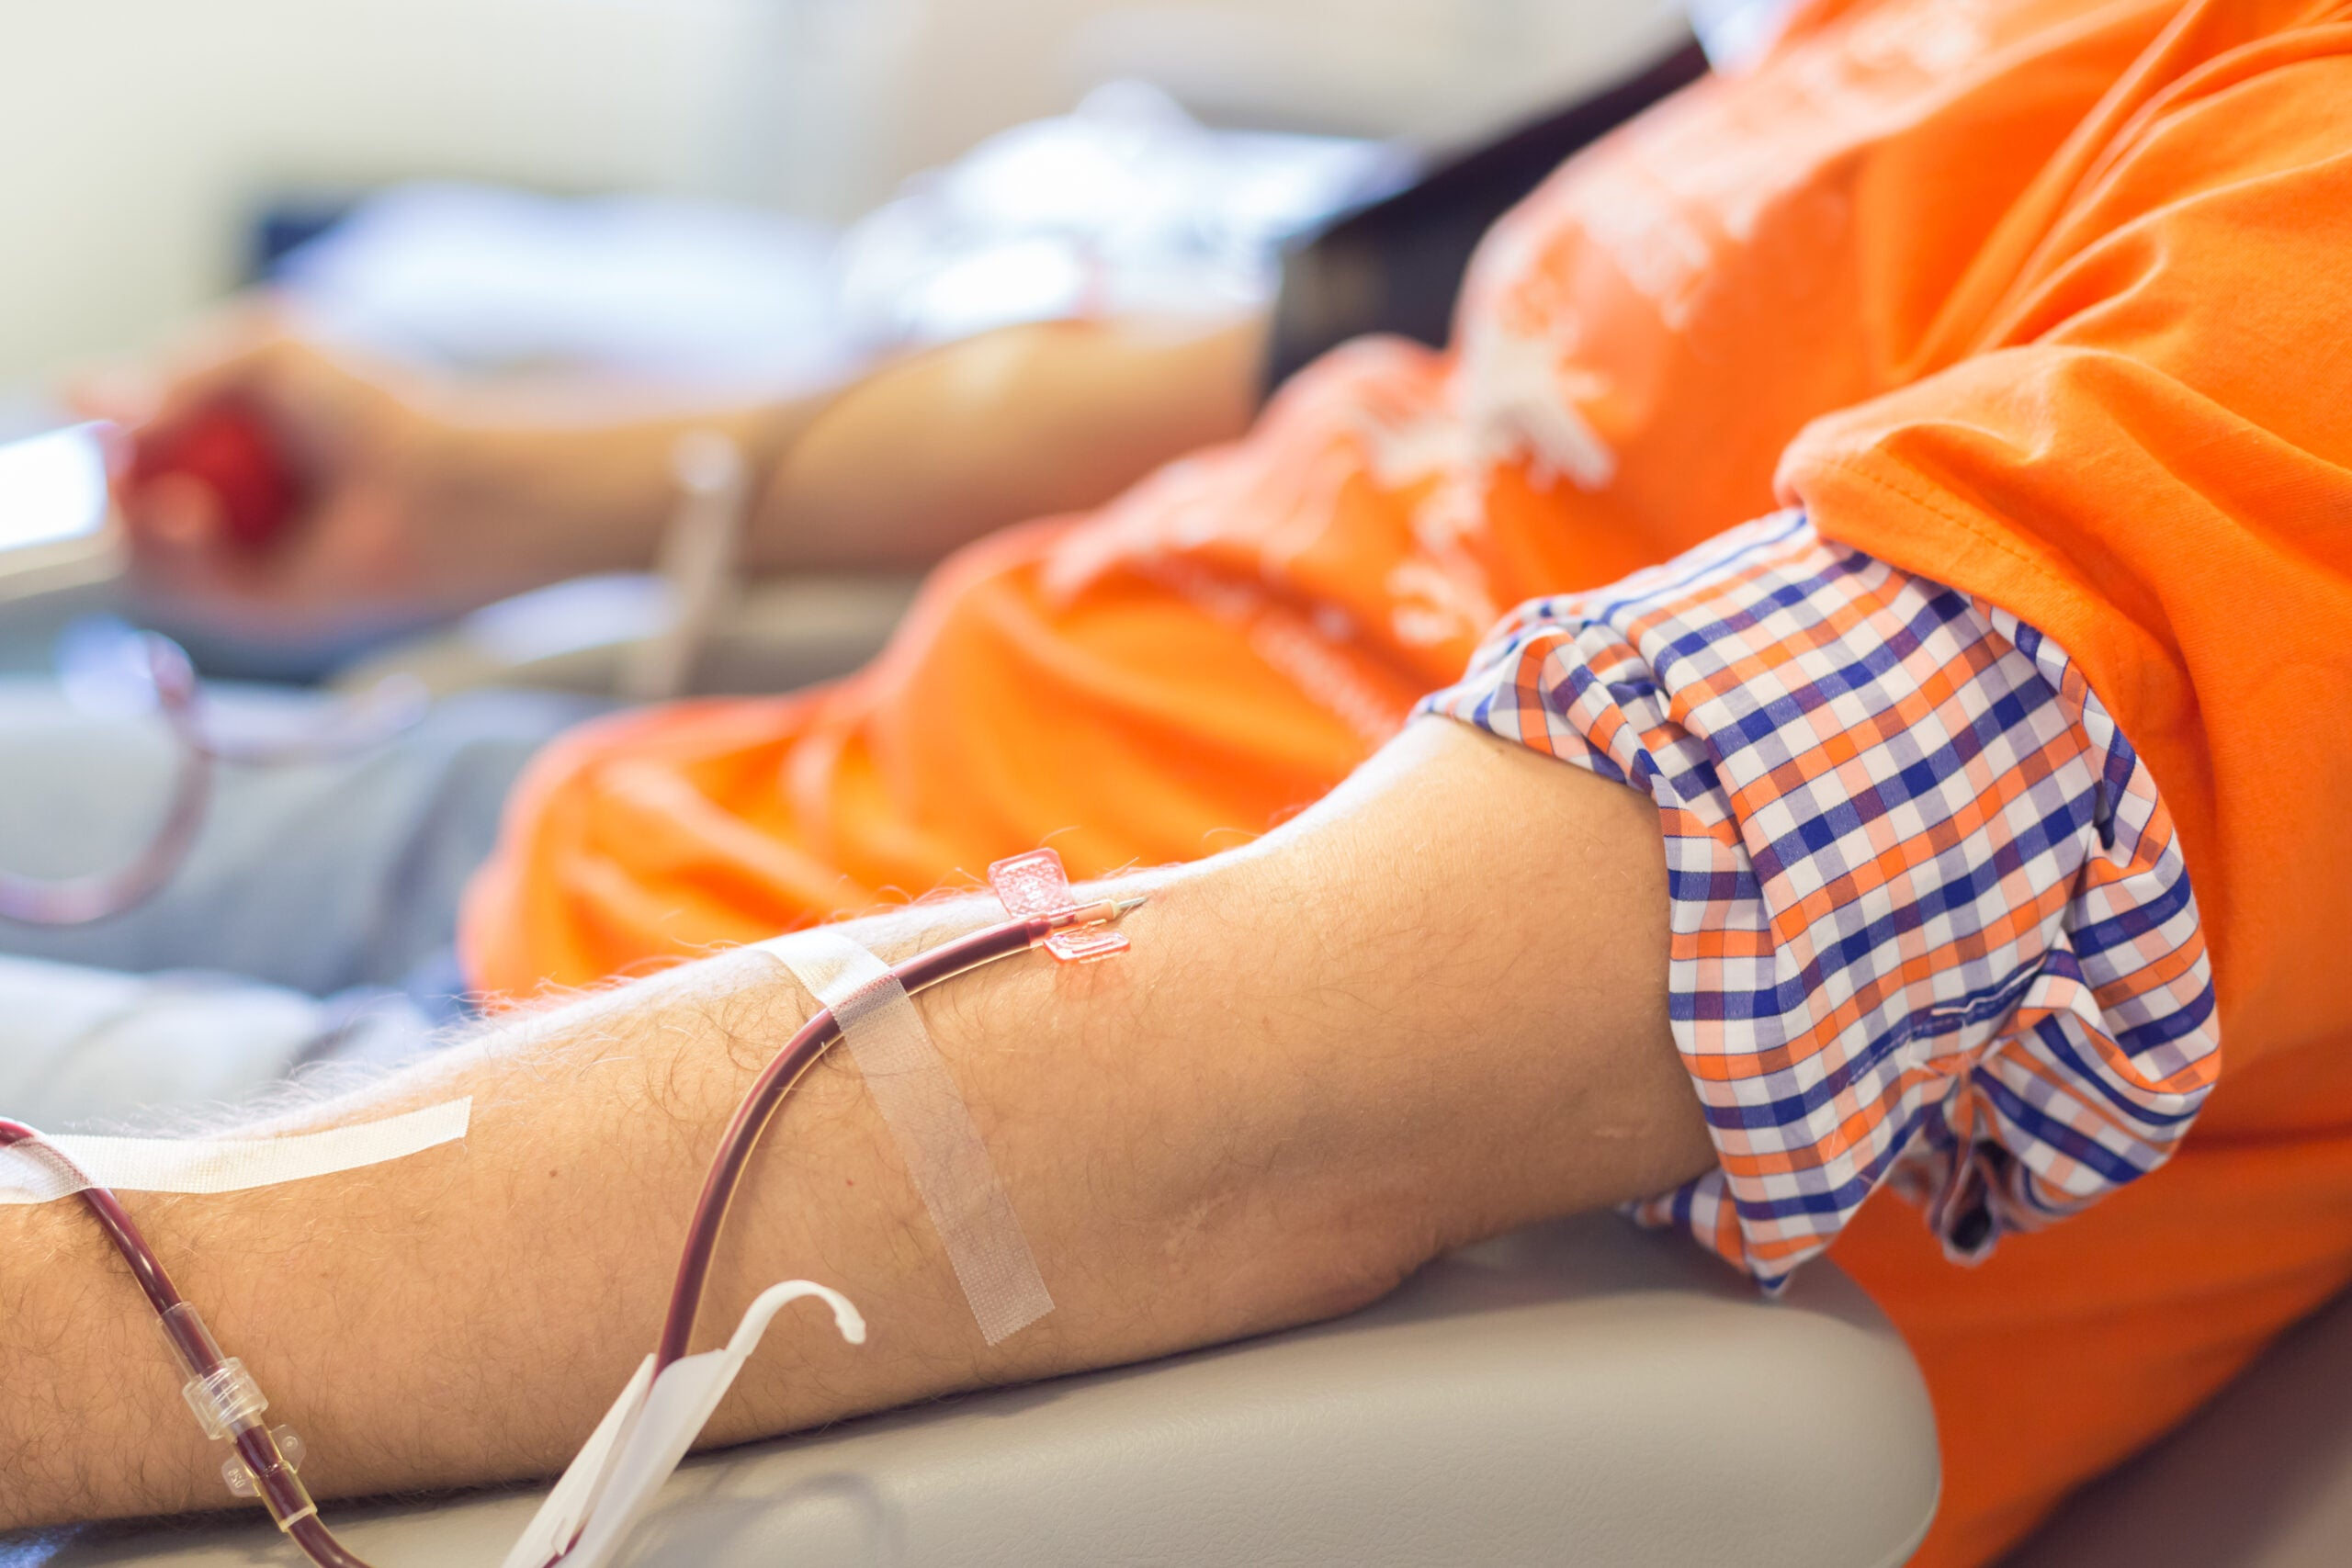 Oh, the places your blood will go after you donate it